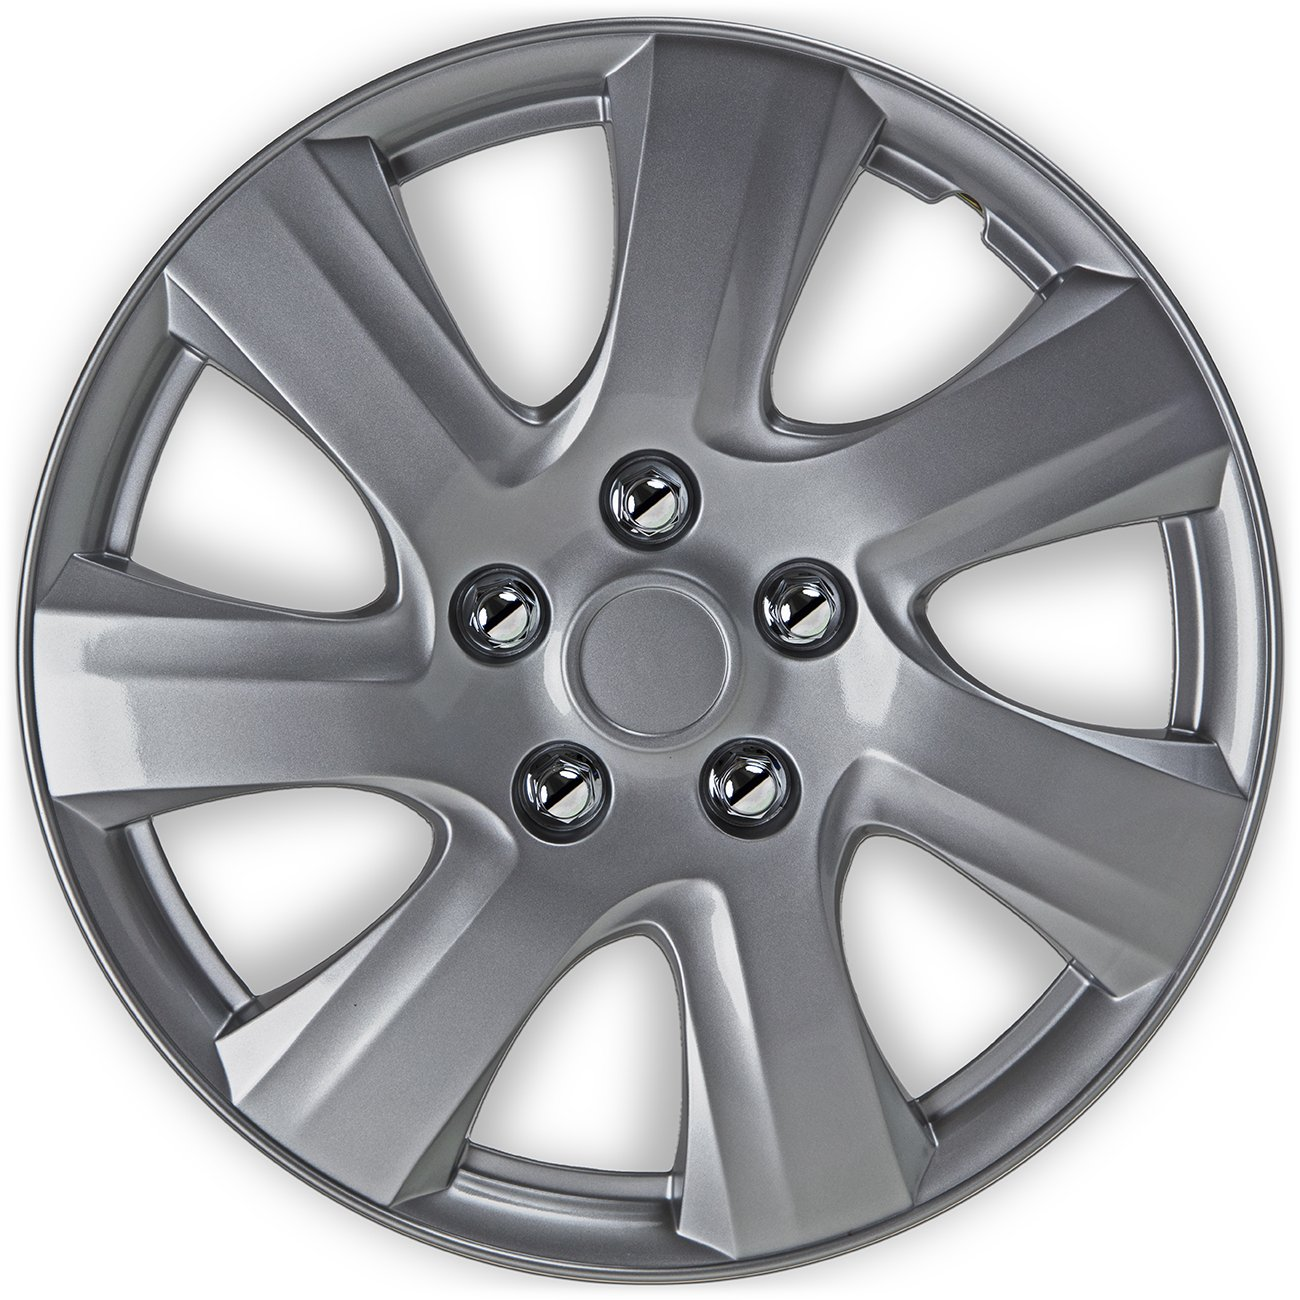 Amazon Com 16 Inch Hubcaps Best For 2010 2011 Toyota Camry Set